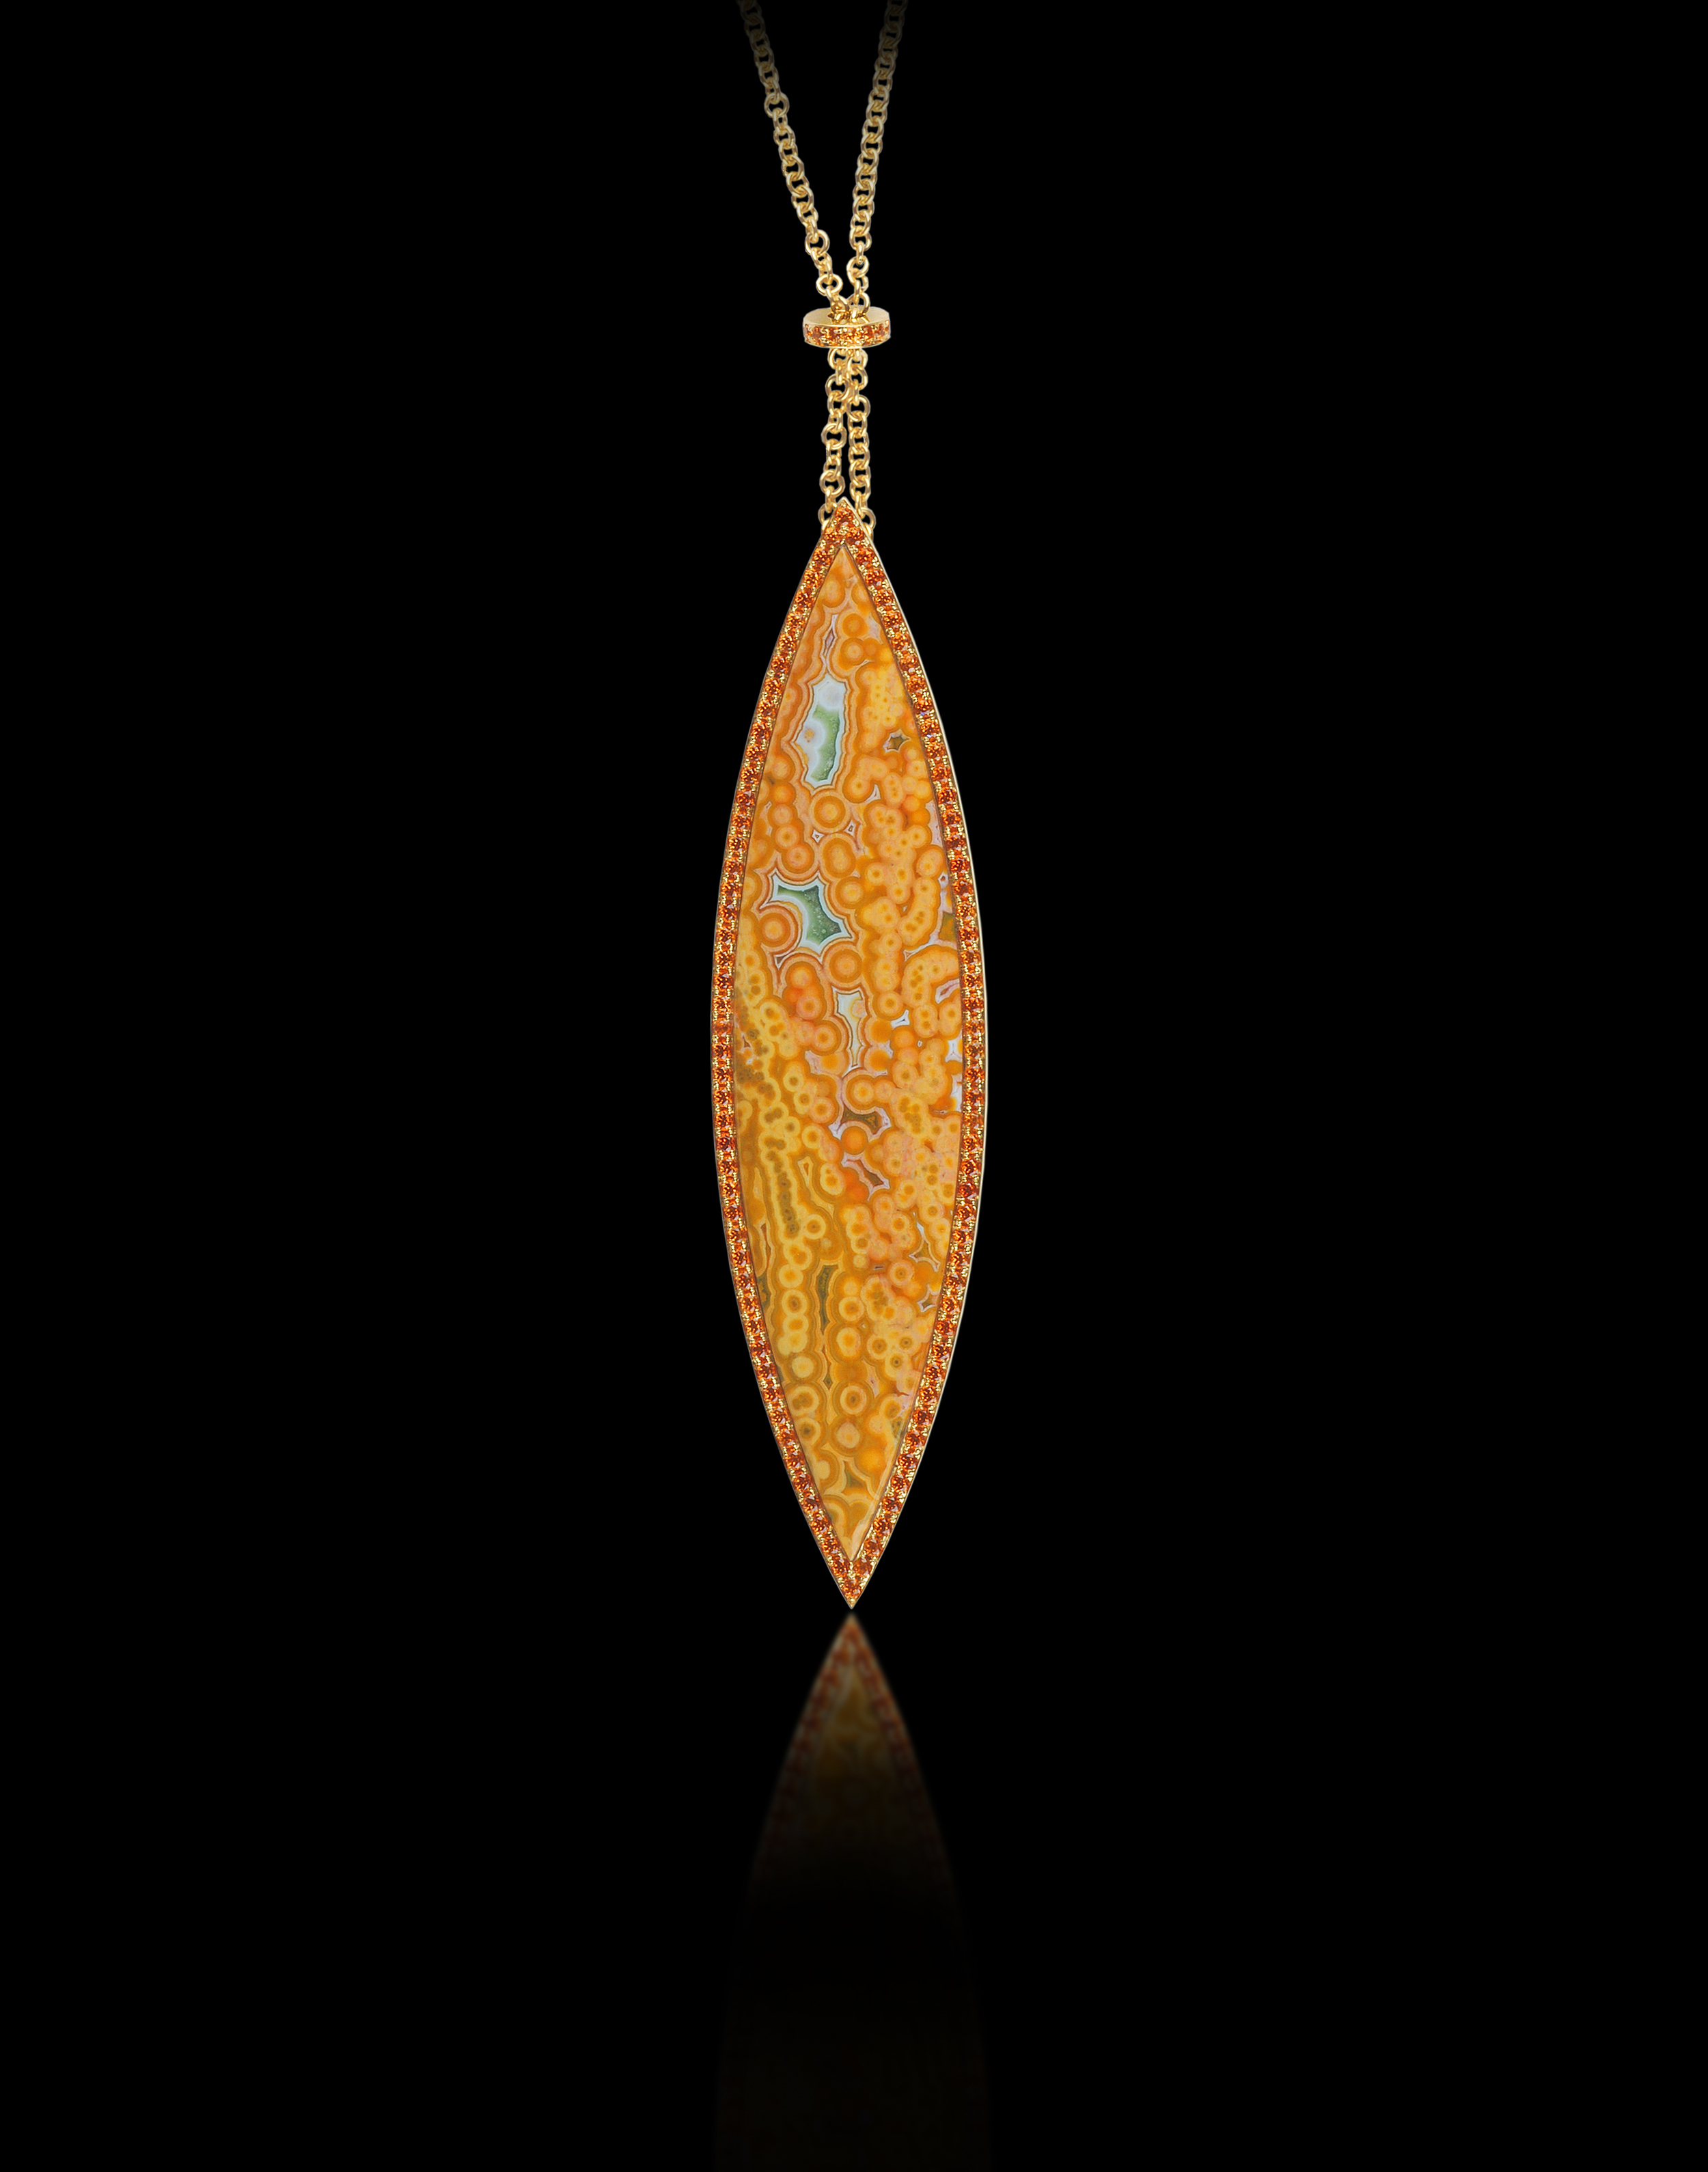 Pendulum   Elegance resides naturally in all of nature's wonders.    Brooch and Pendant in 18 karat Yellow Gold, and Spessartite Garnets      $4,000